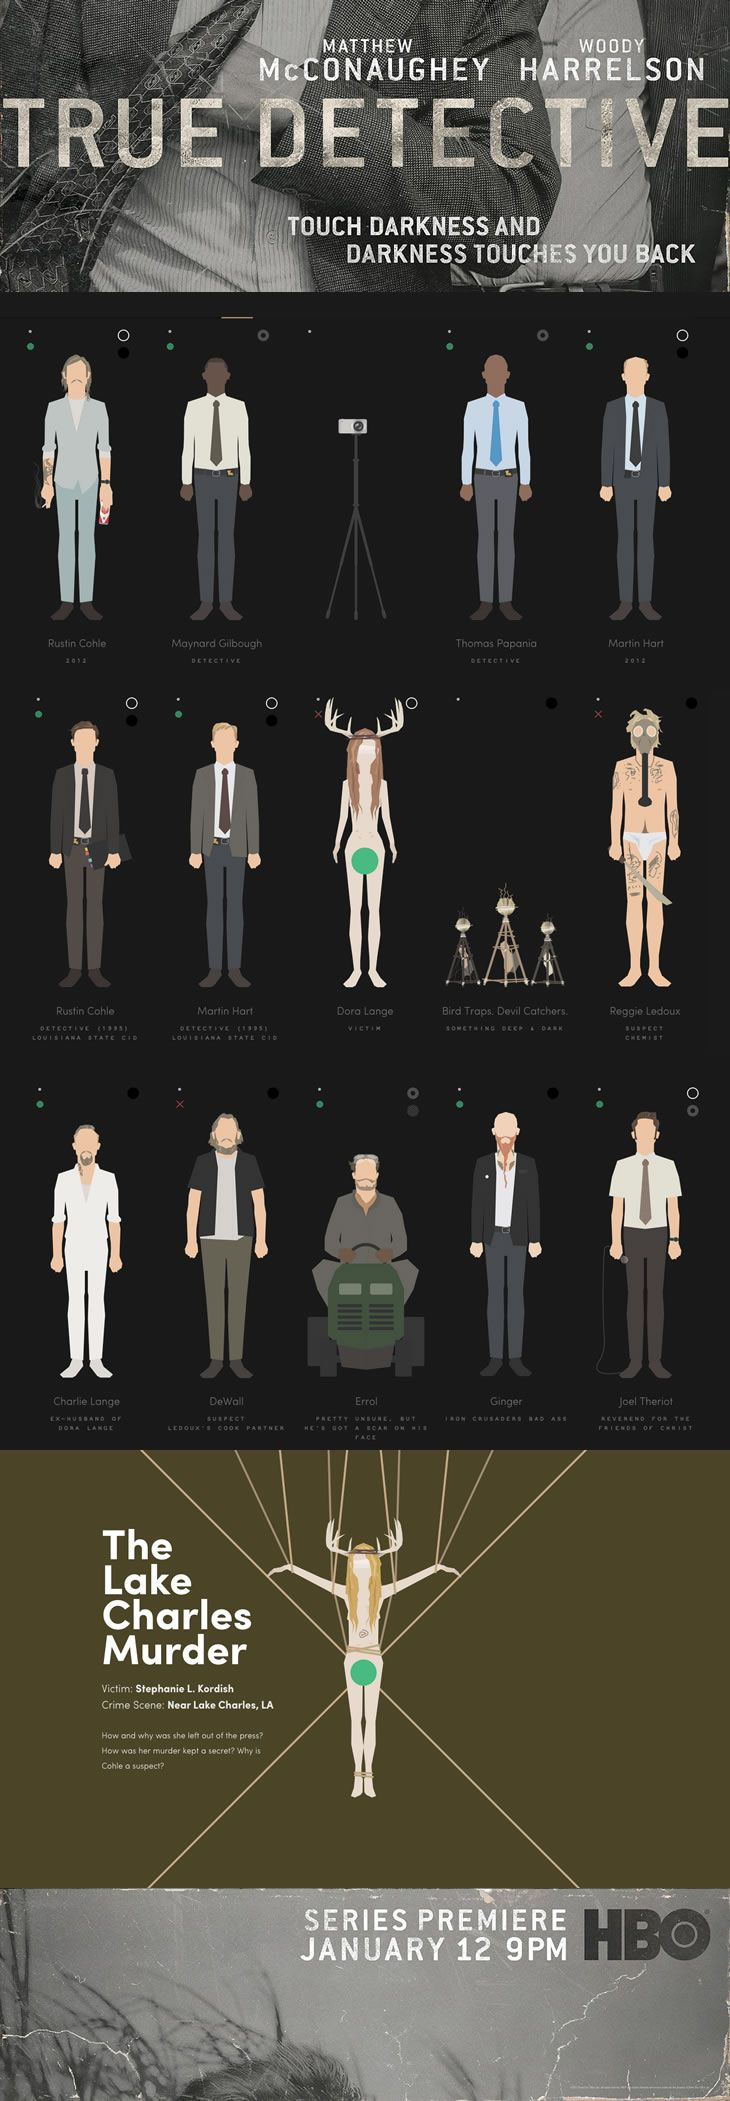 Saw this and waiting for season two!  True Detective infographic